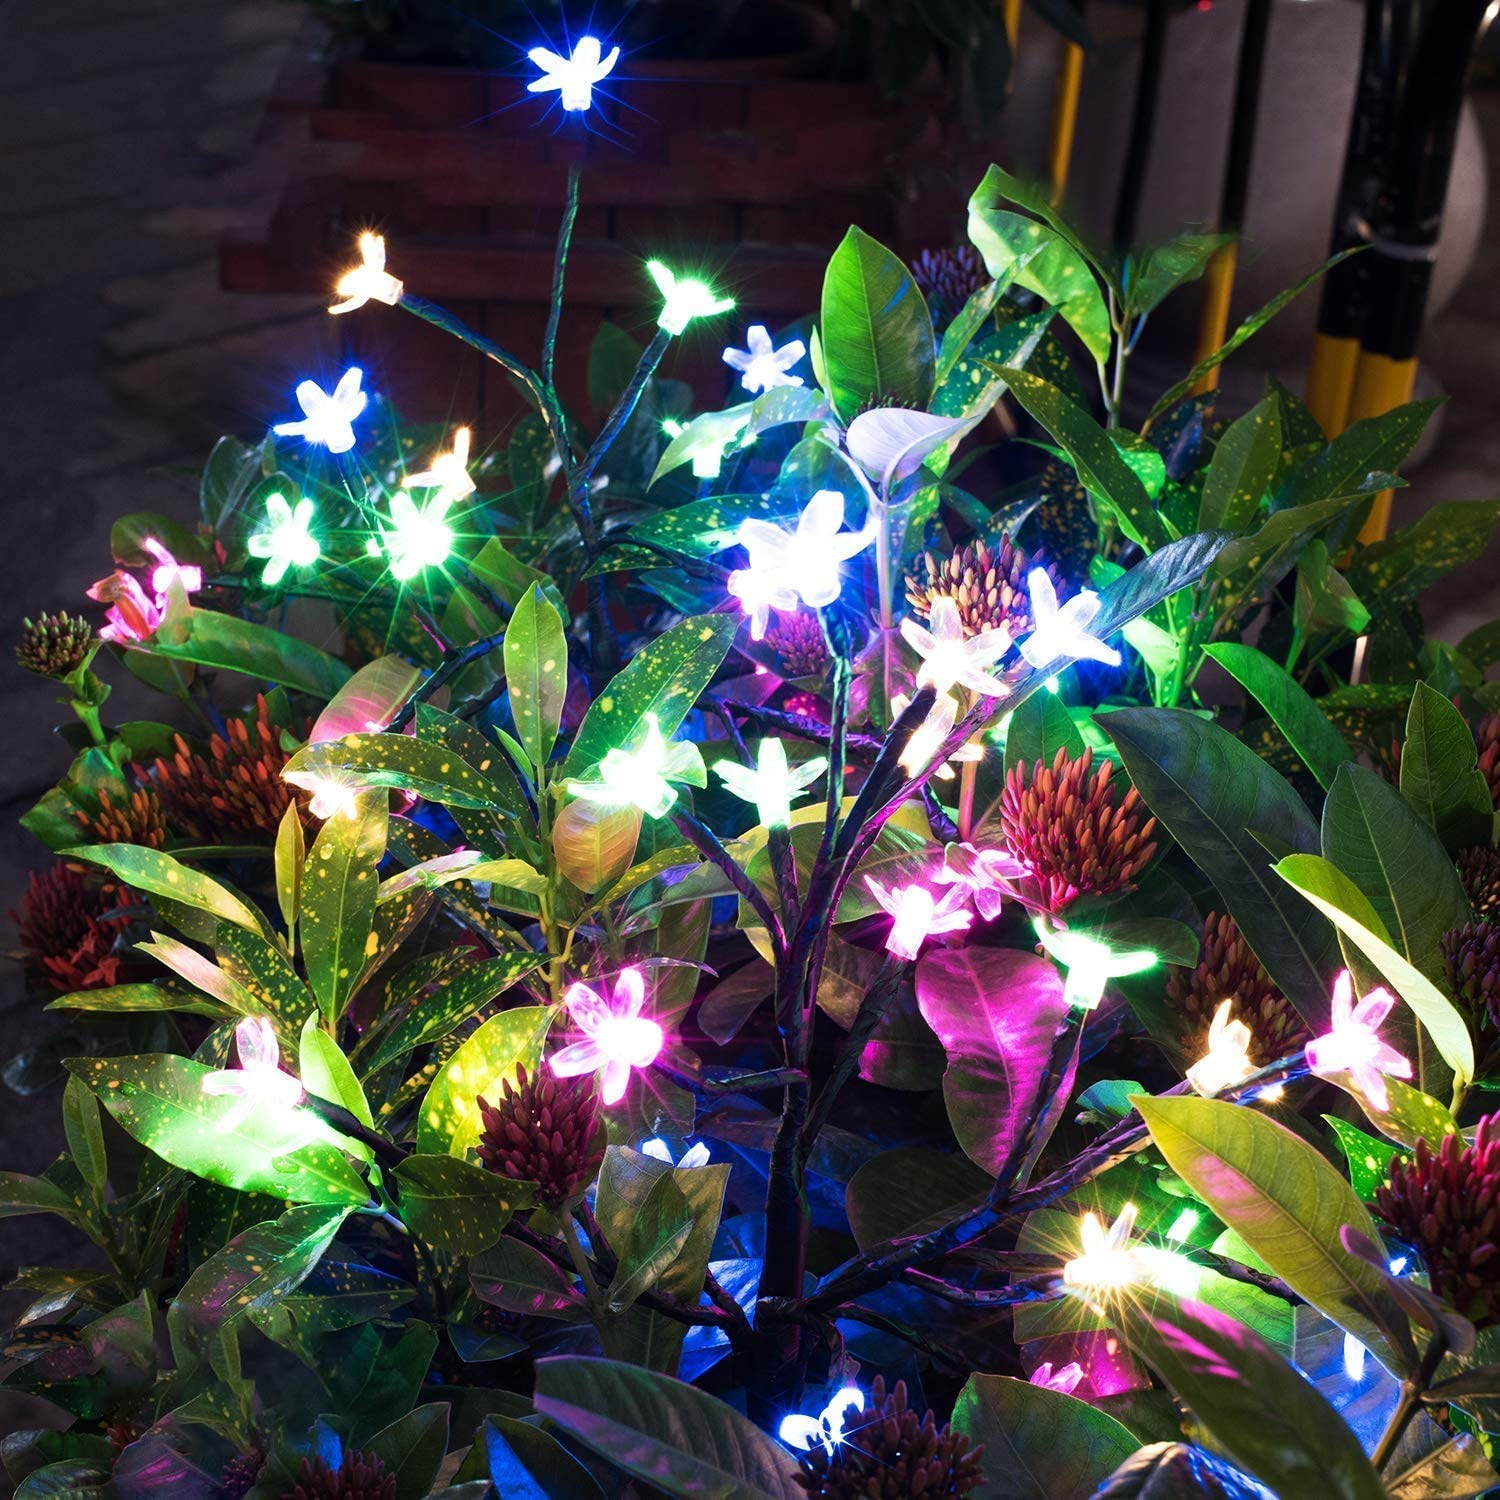 Solar Garden Decorative Lights Outdoor 2 Pack Beautiful Led Solar Powered Fairy Landscape Tree Lights Two Mode Flower Lights For Pathway Patio Yard Deck Walkway Christmas Decoration Buy Online In Cayman Islands At Cayman Desertcart Com